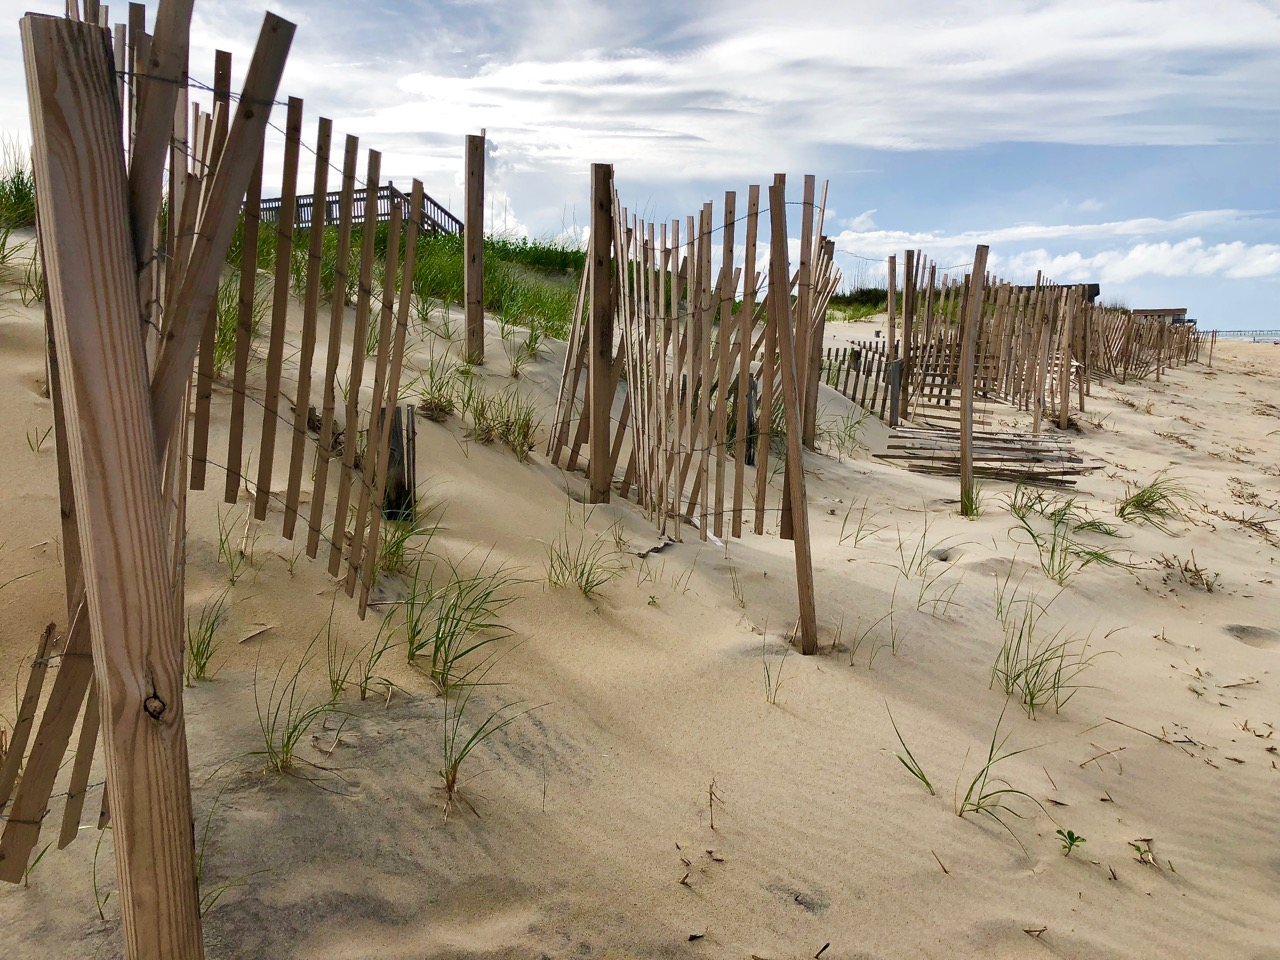 Top 10 Things to Do in the Outer Banks Now